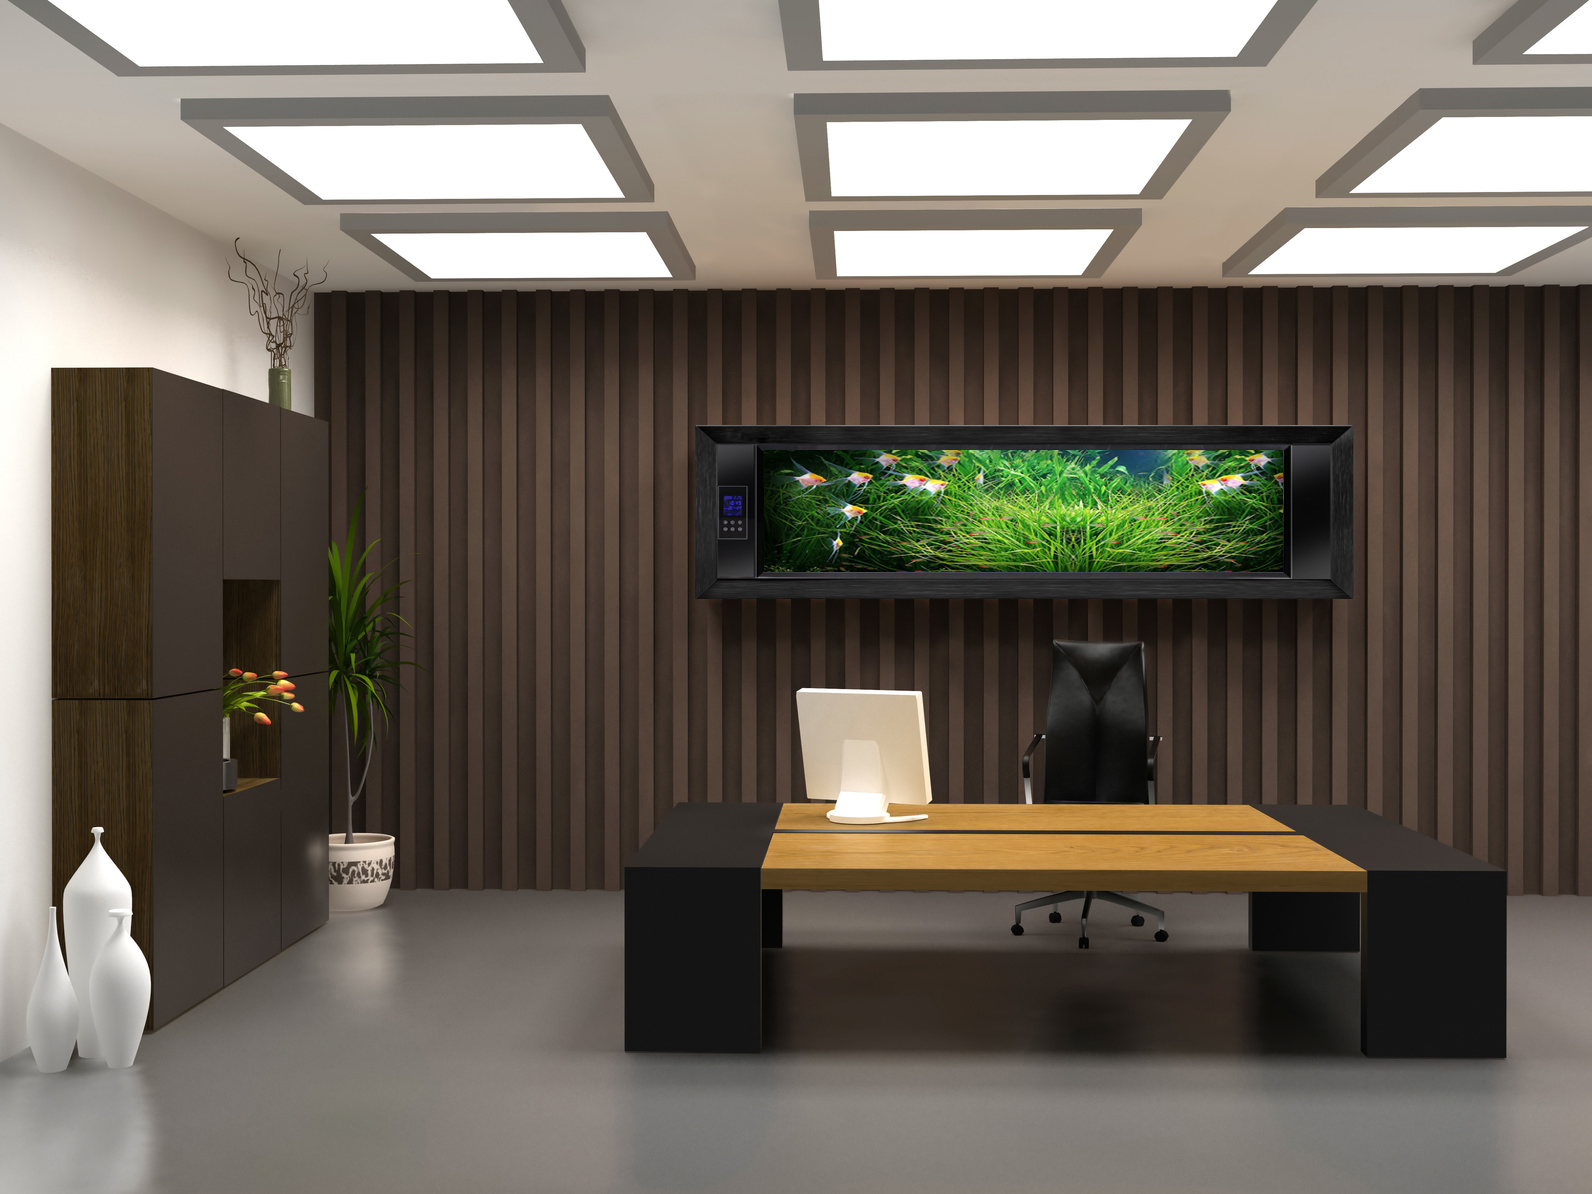 Elegant ceo office design bellisima for Interior designs of offices